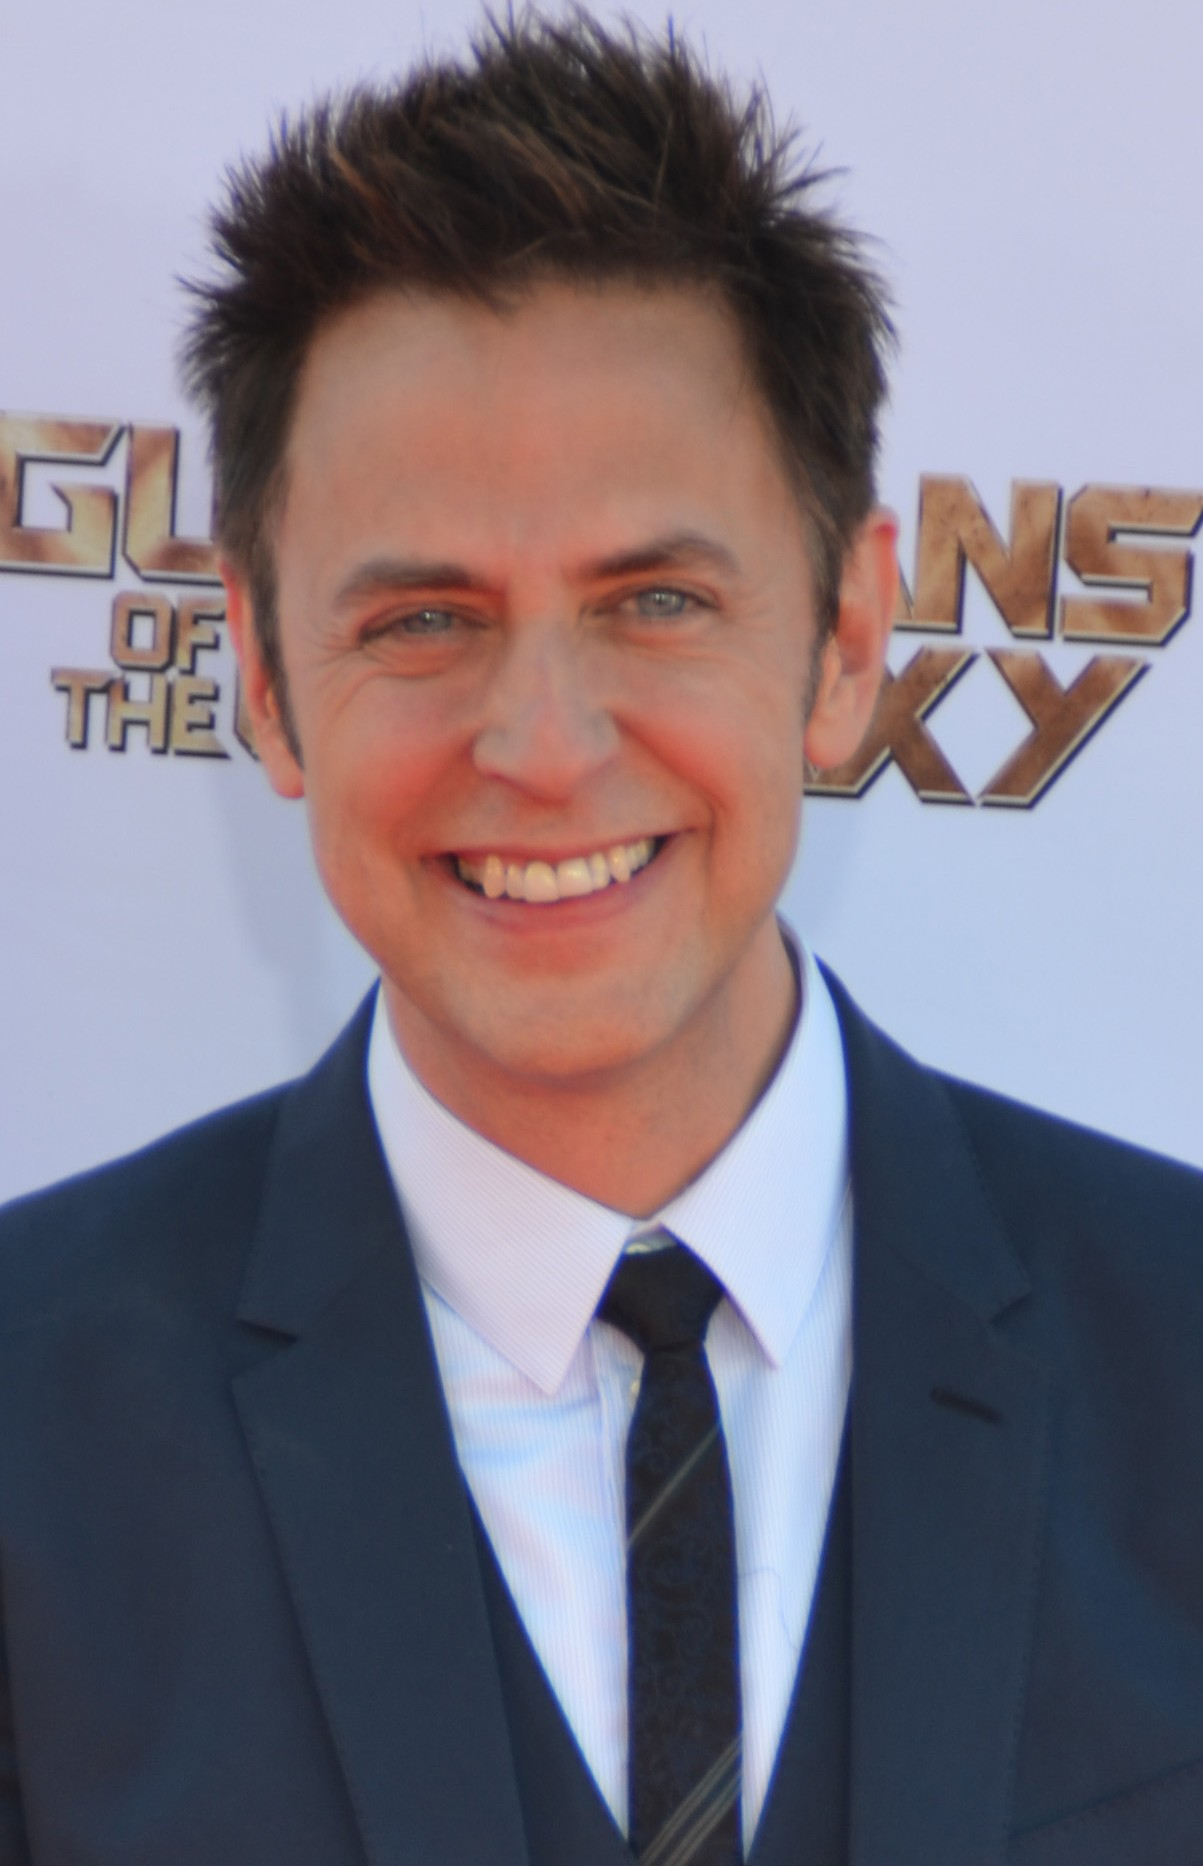 James Gunn is wearing a white shirt and a black suit and tie